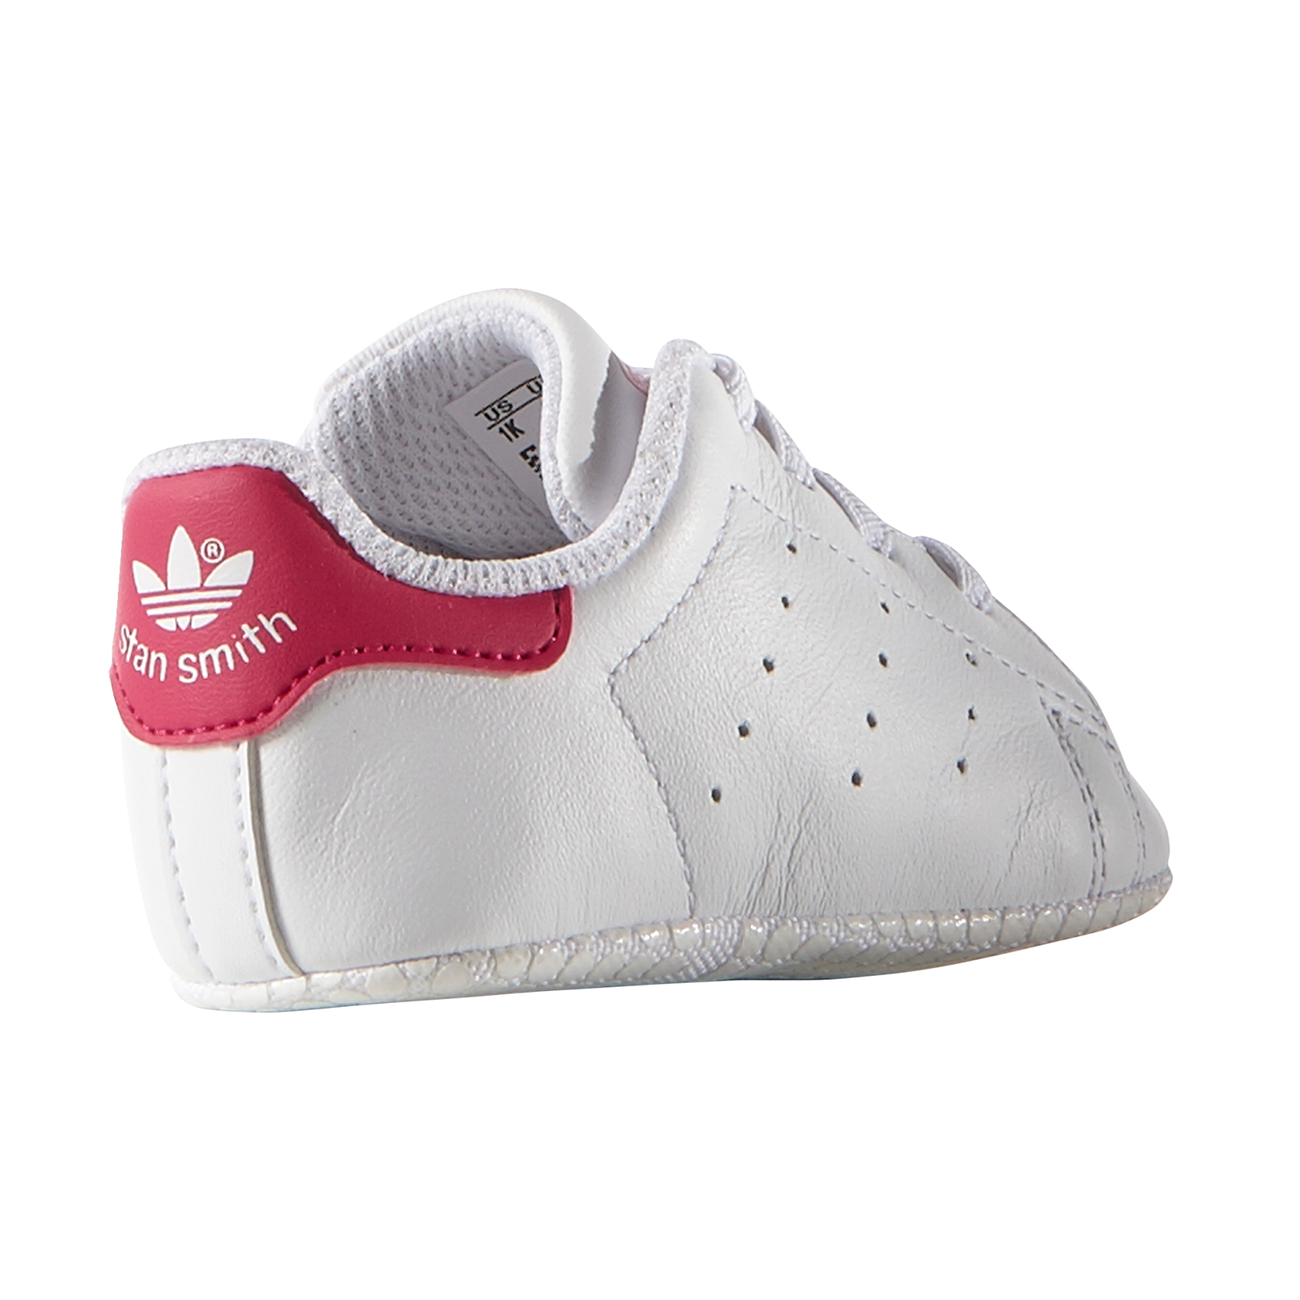 super popular 974a7 fd3e5 adidas Stan Smith Baby Sneakers WhitePink S82618